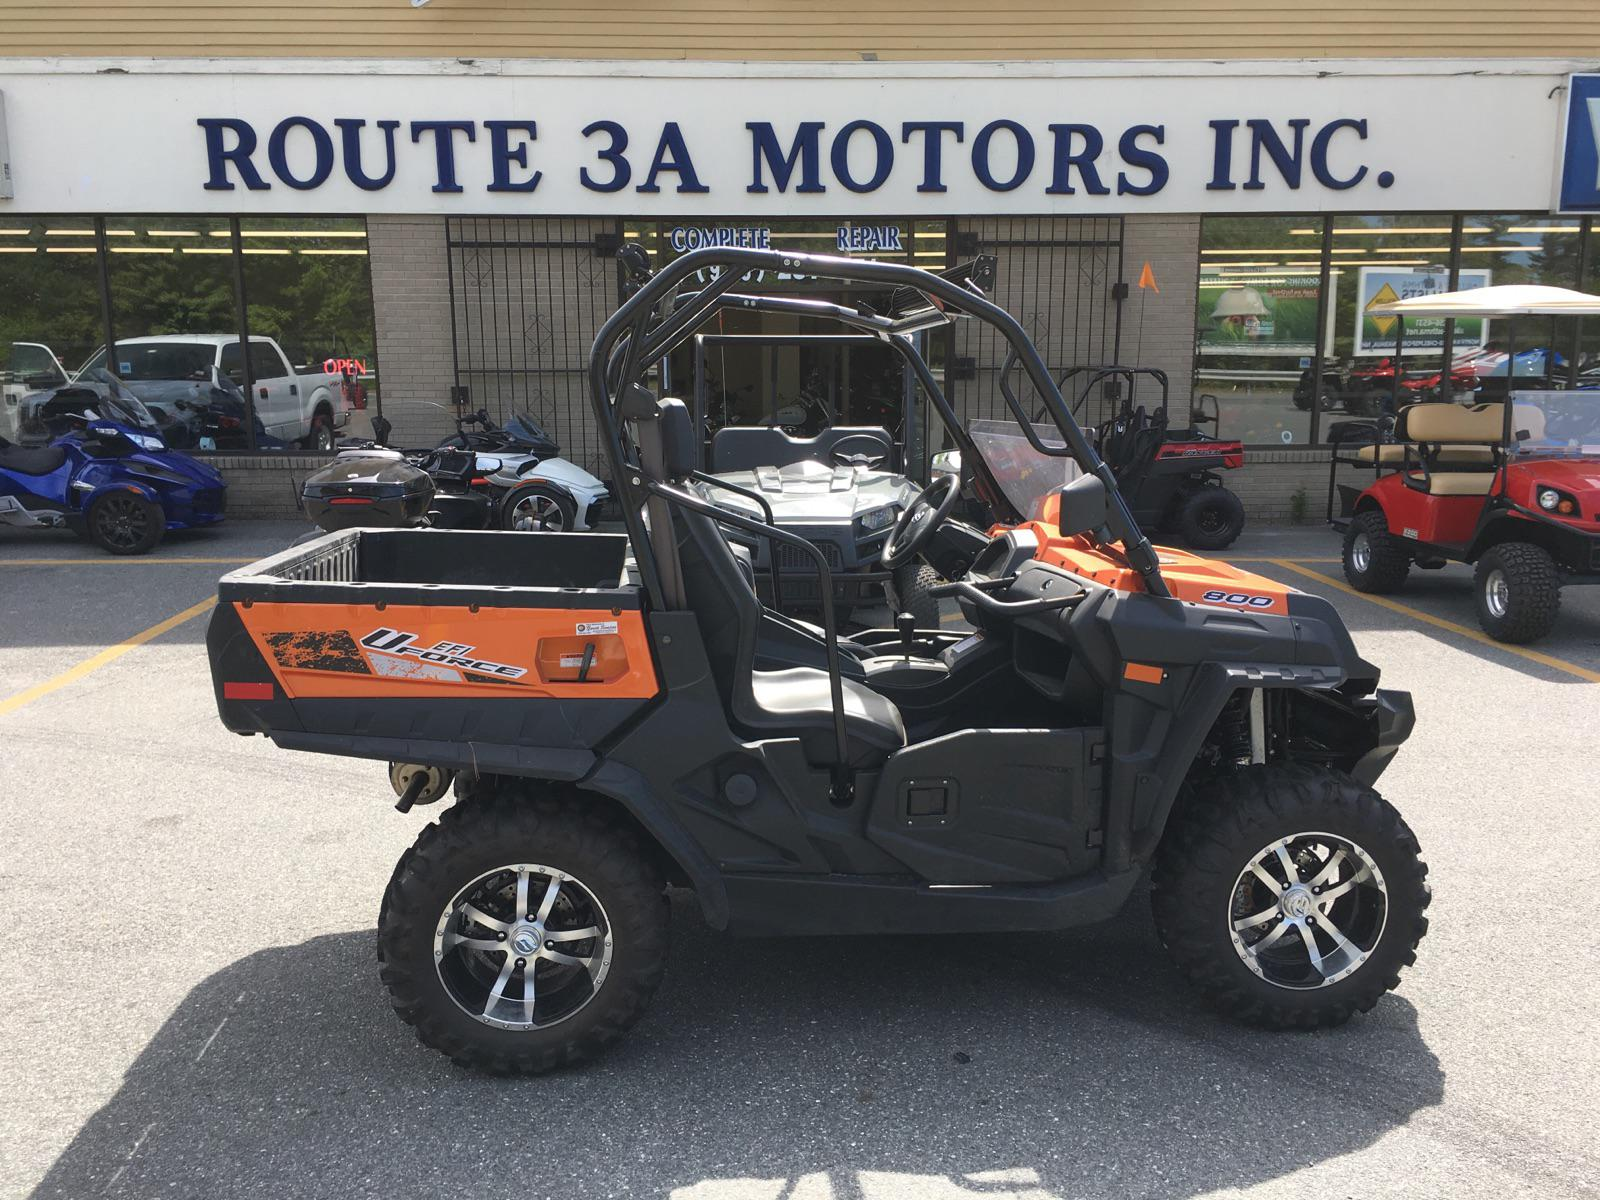 2016 CFMOTO UFORCE 800 EPS for sale in North Chelmsford, MA | ROUTE 3A MOTORS, INC. (978) 251-4440